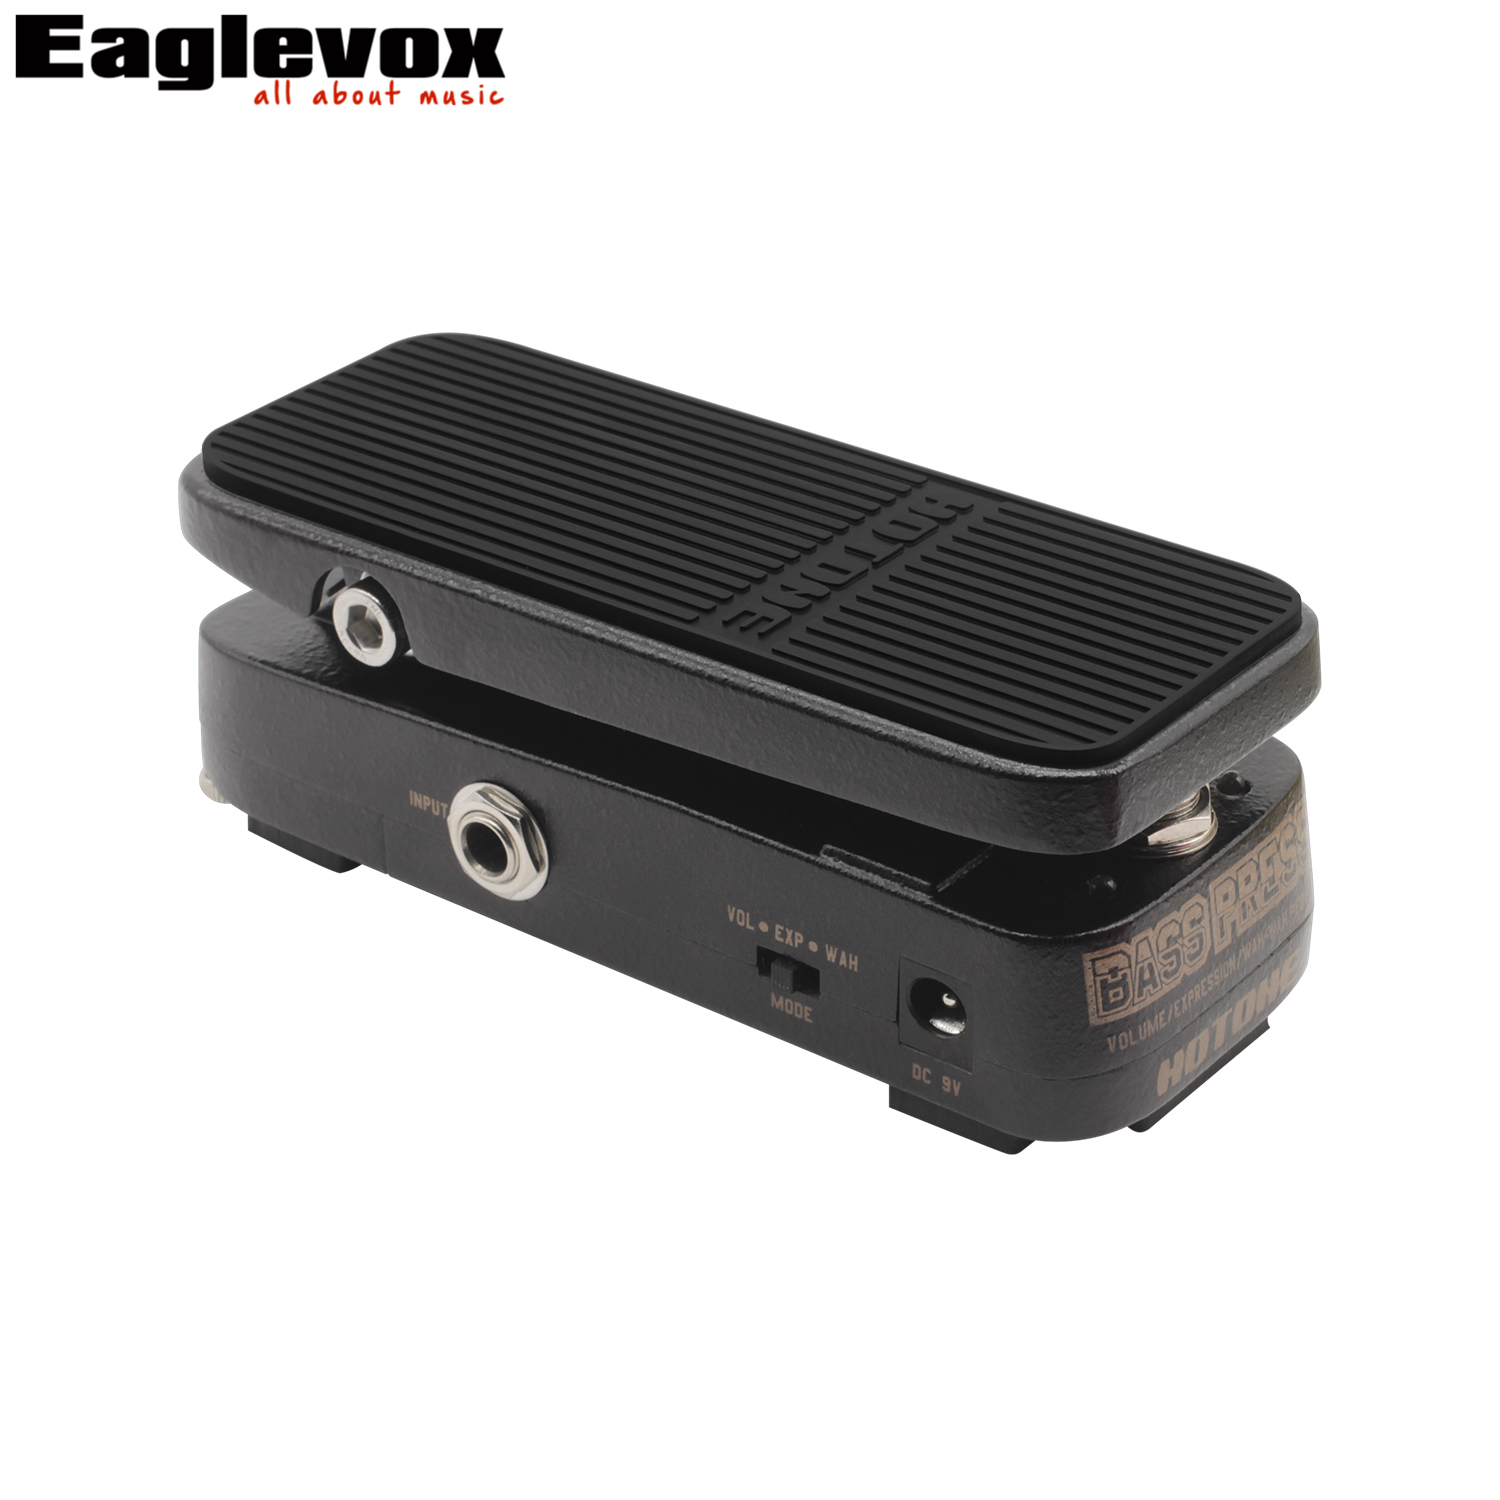 Hotone Bass Press Volume Expression Wah Pedal Electric Guitar Effect Pedal Strong Clear Sound volume guitar pedal volume pedal new portable true bypass design 15ma 2in1 volume pedal cp 31 wah pedal musical instruments accessories ea14